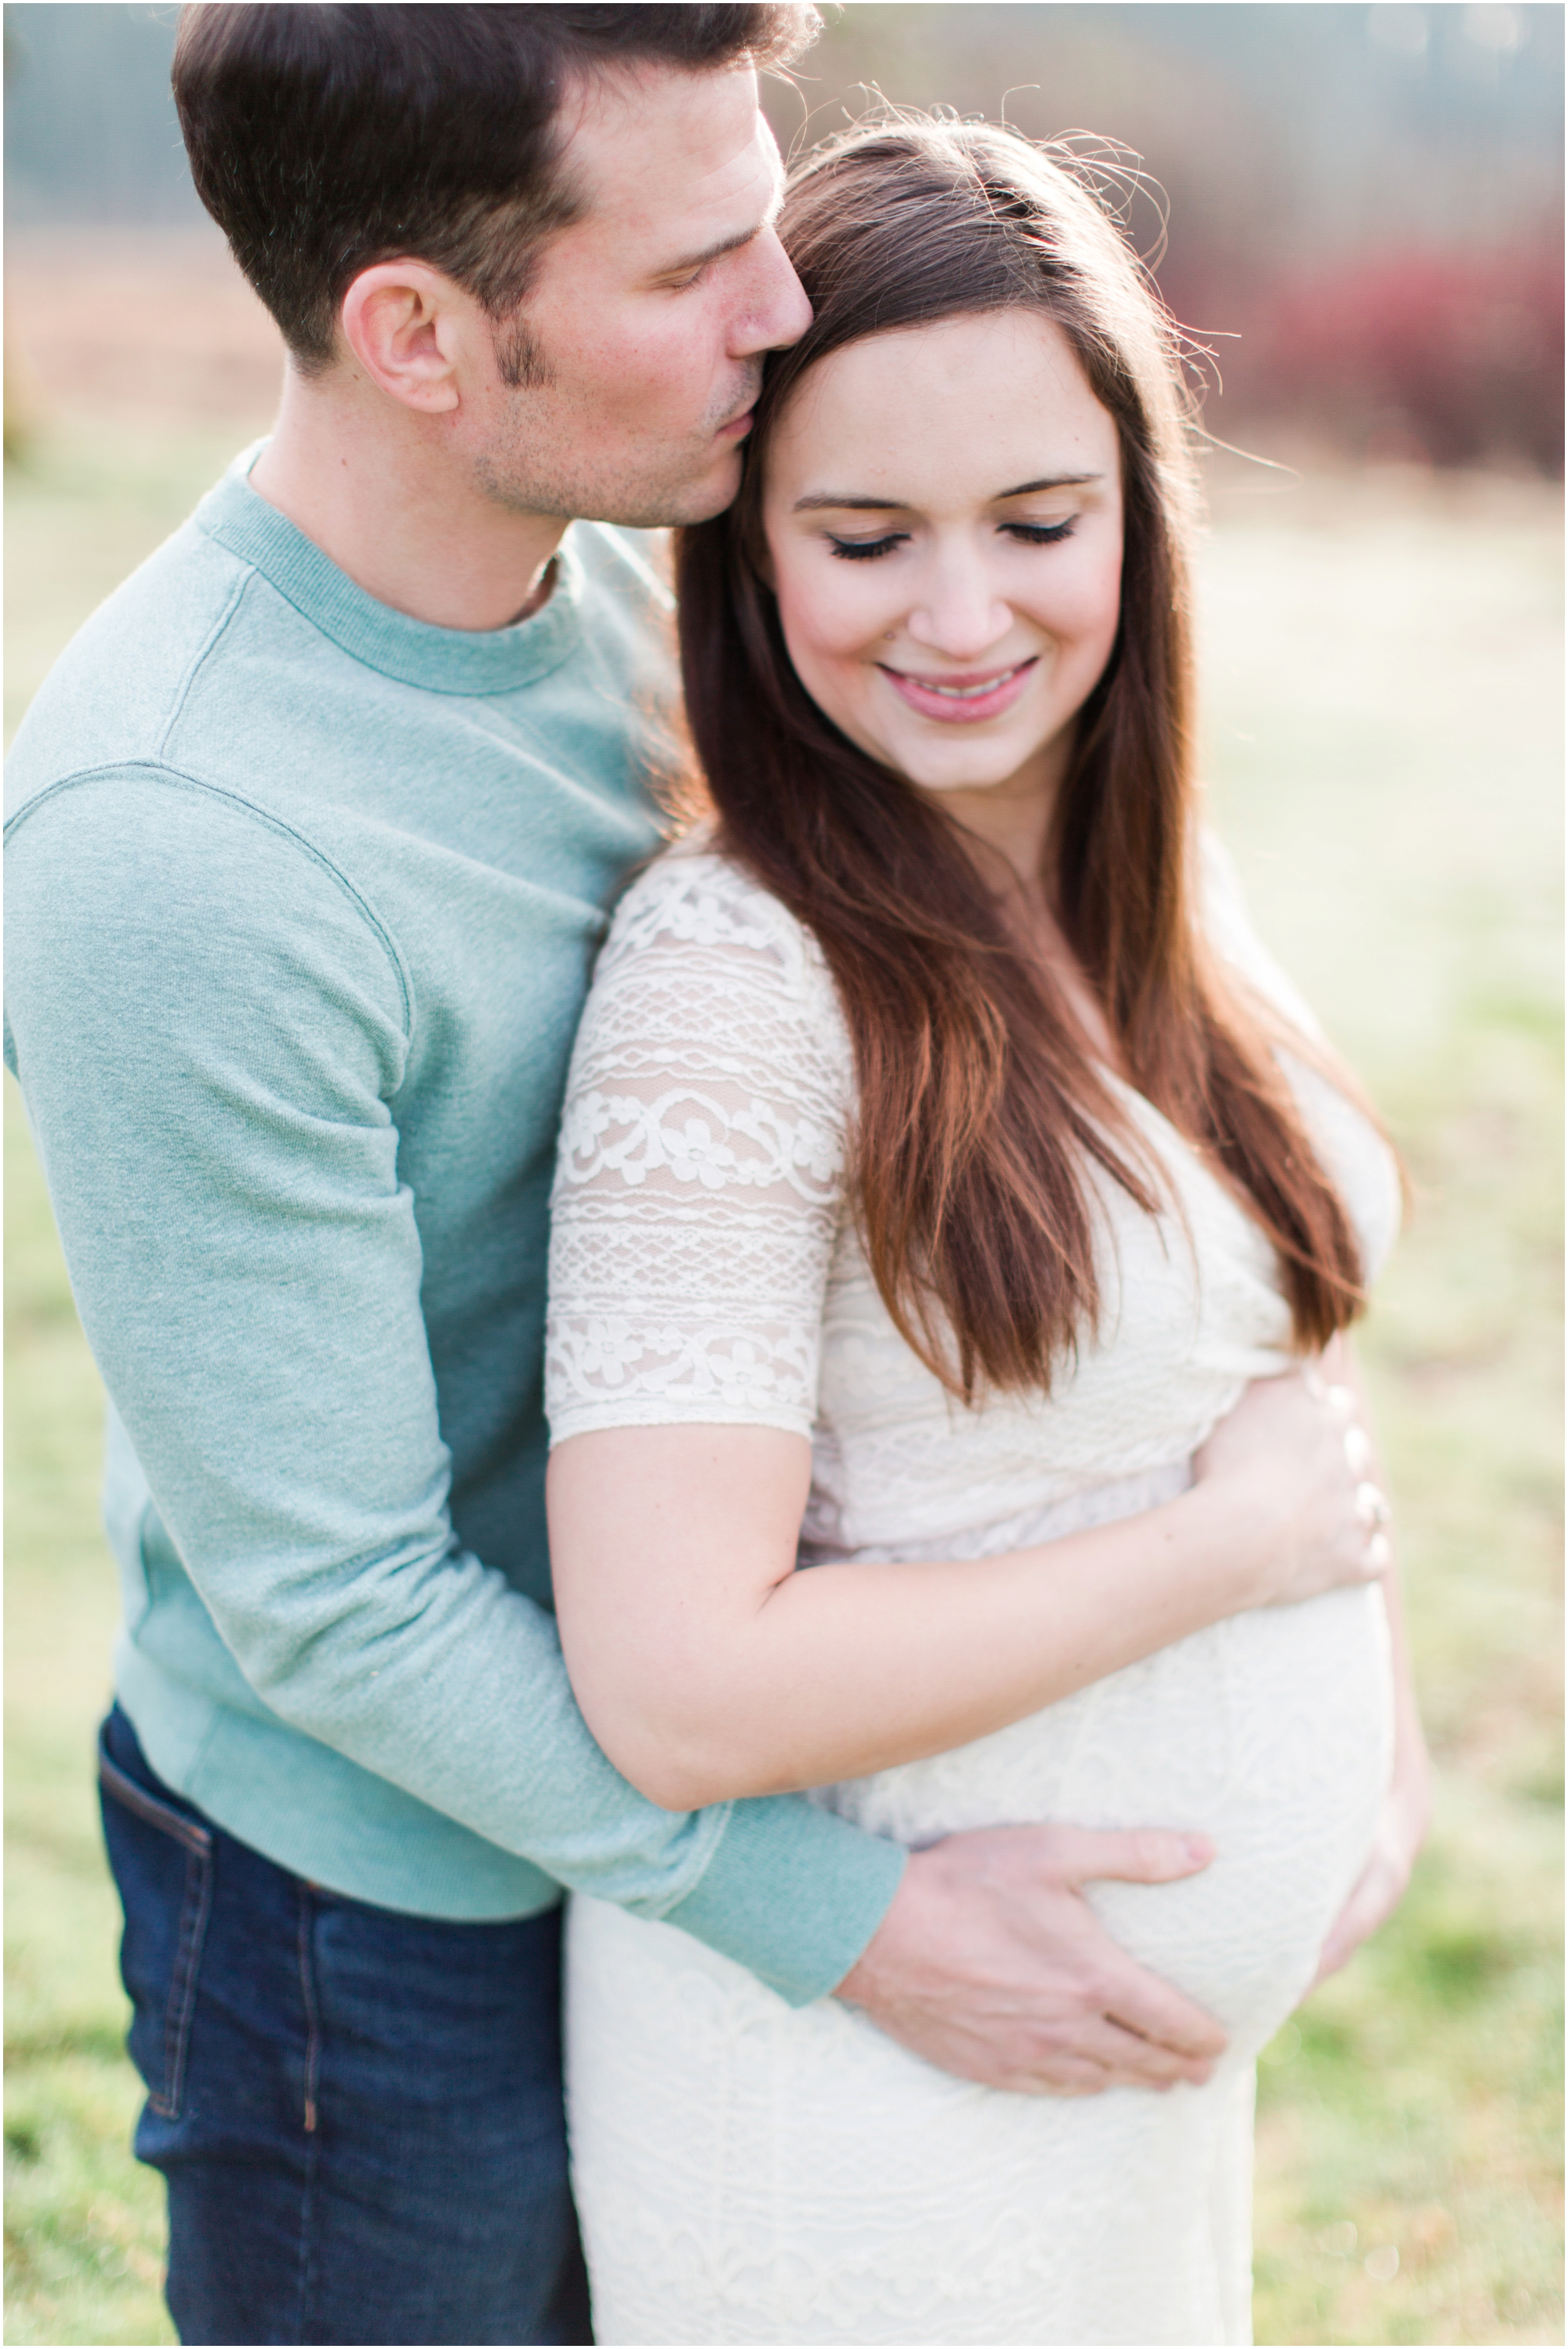 Maternity family photos by Briana Calderon Photography based in the Greater Seattle & Tacoma, WA_1018.jpg